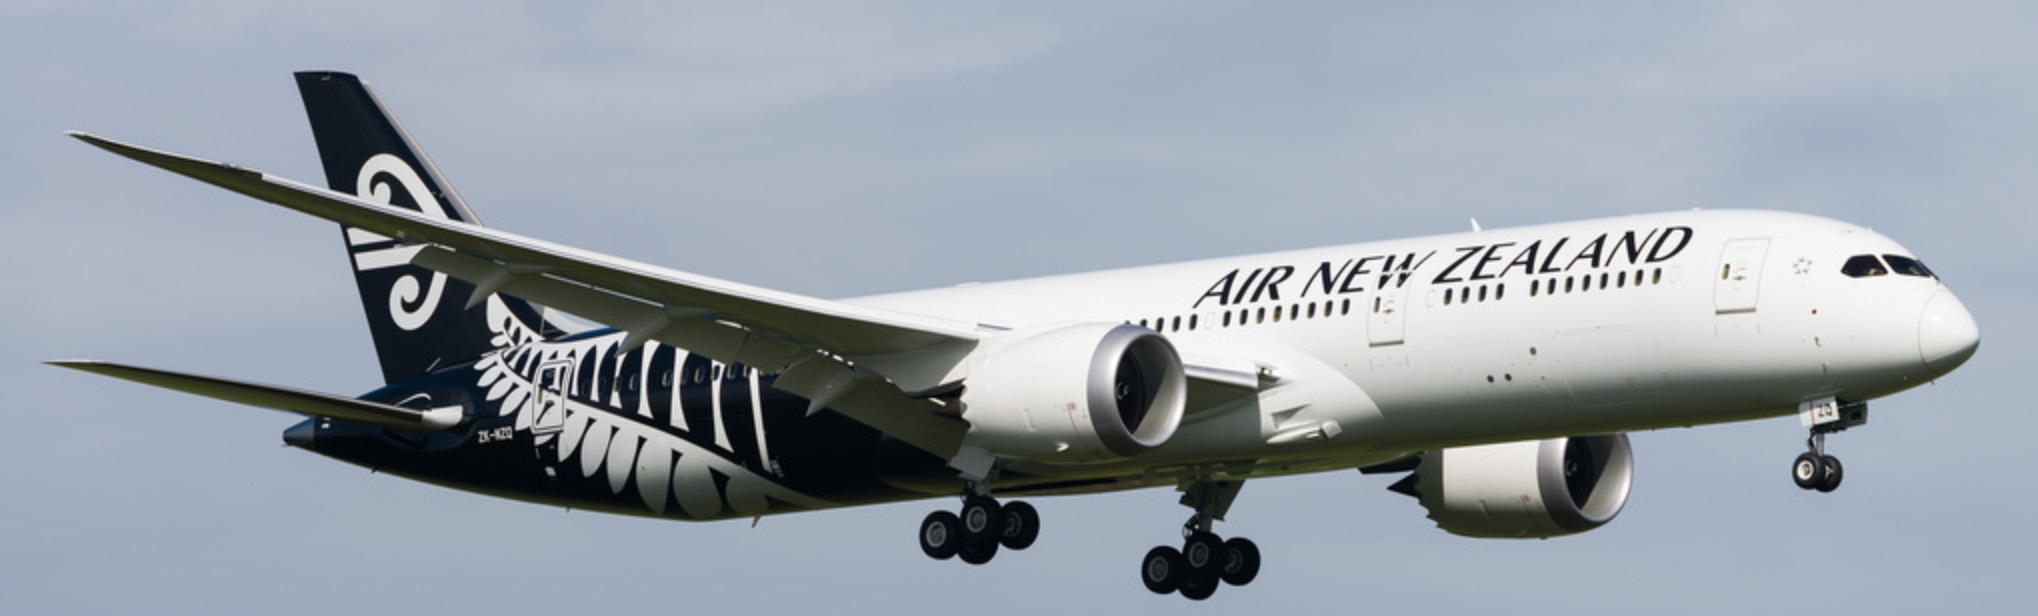 Air New Zealand Boeing 787-9 on Final Approach